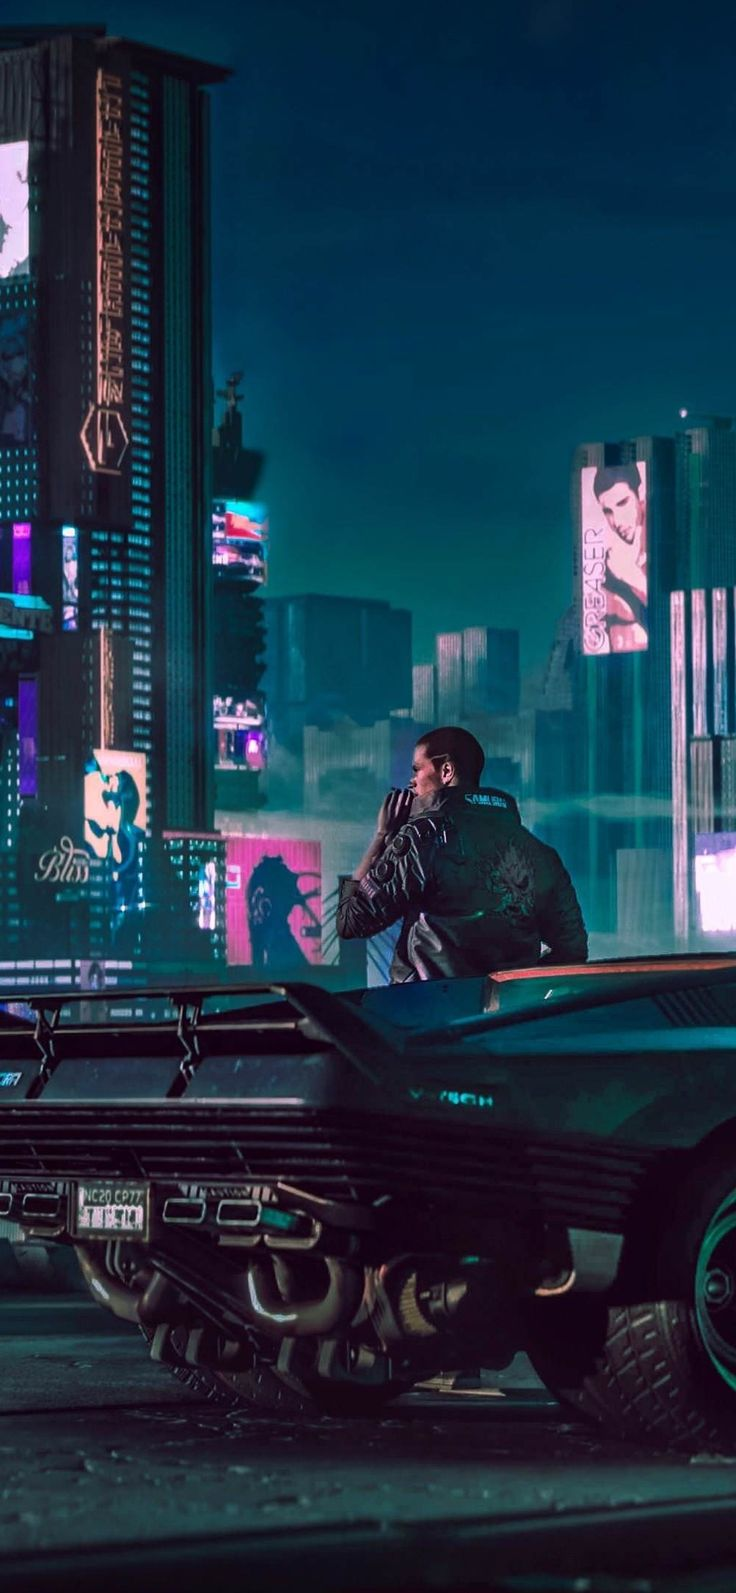 1125x2436 2018 Cyberpunk 2077 4k Iphone Xs Iphone 10 Iphone X Hd 4k Wallpapers Images Backgrounds Photos And Pi Cyberpunk 2077 Cyberpunk Cyberpunk Aesthetic